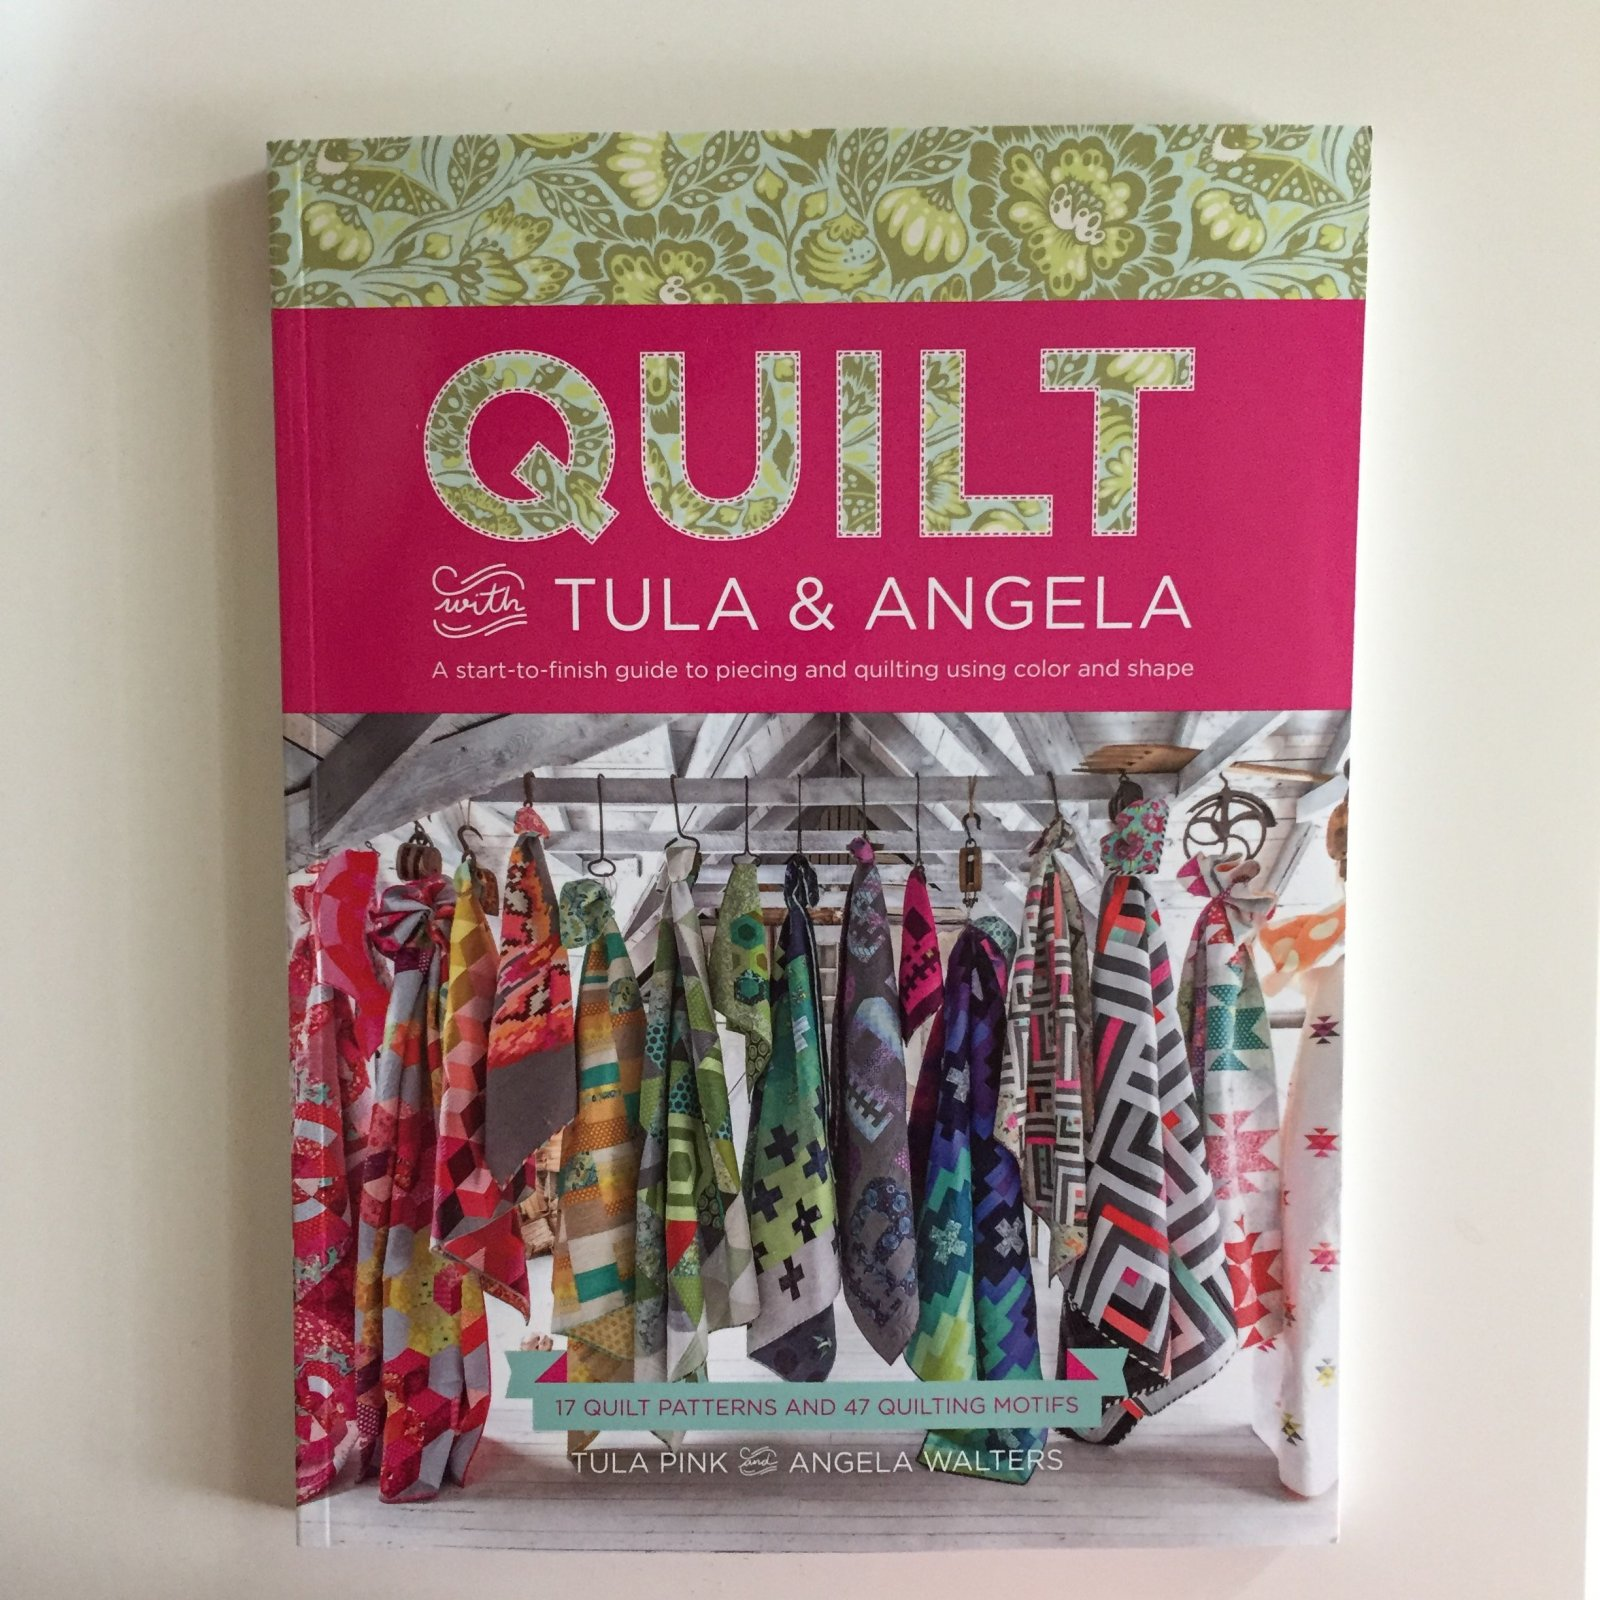 Book-Quilt with Tula & Angela